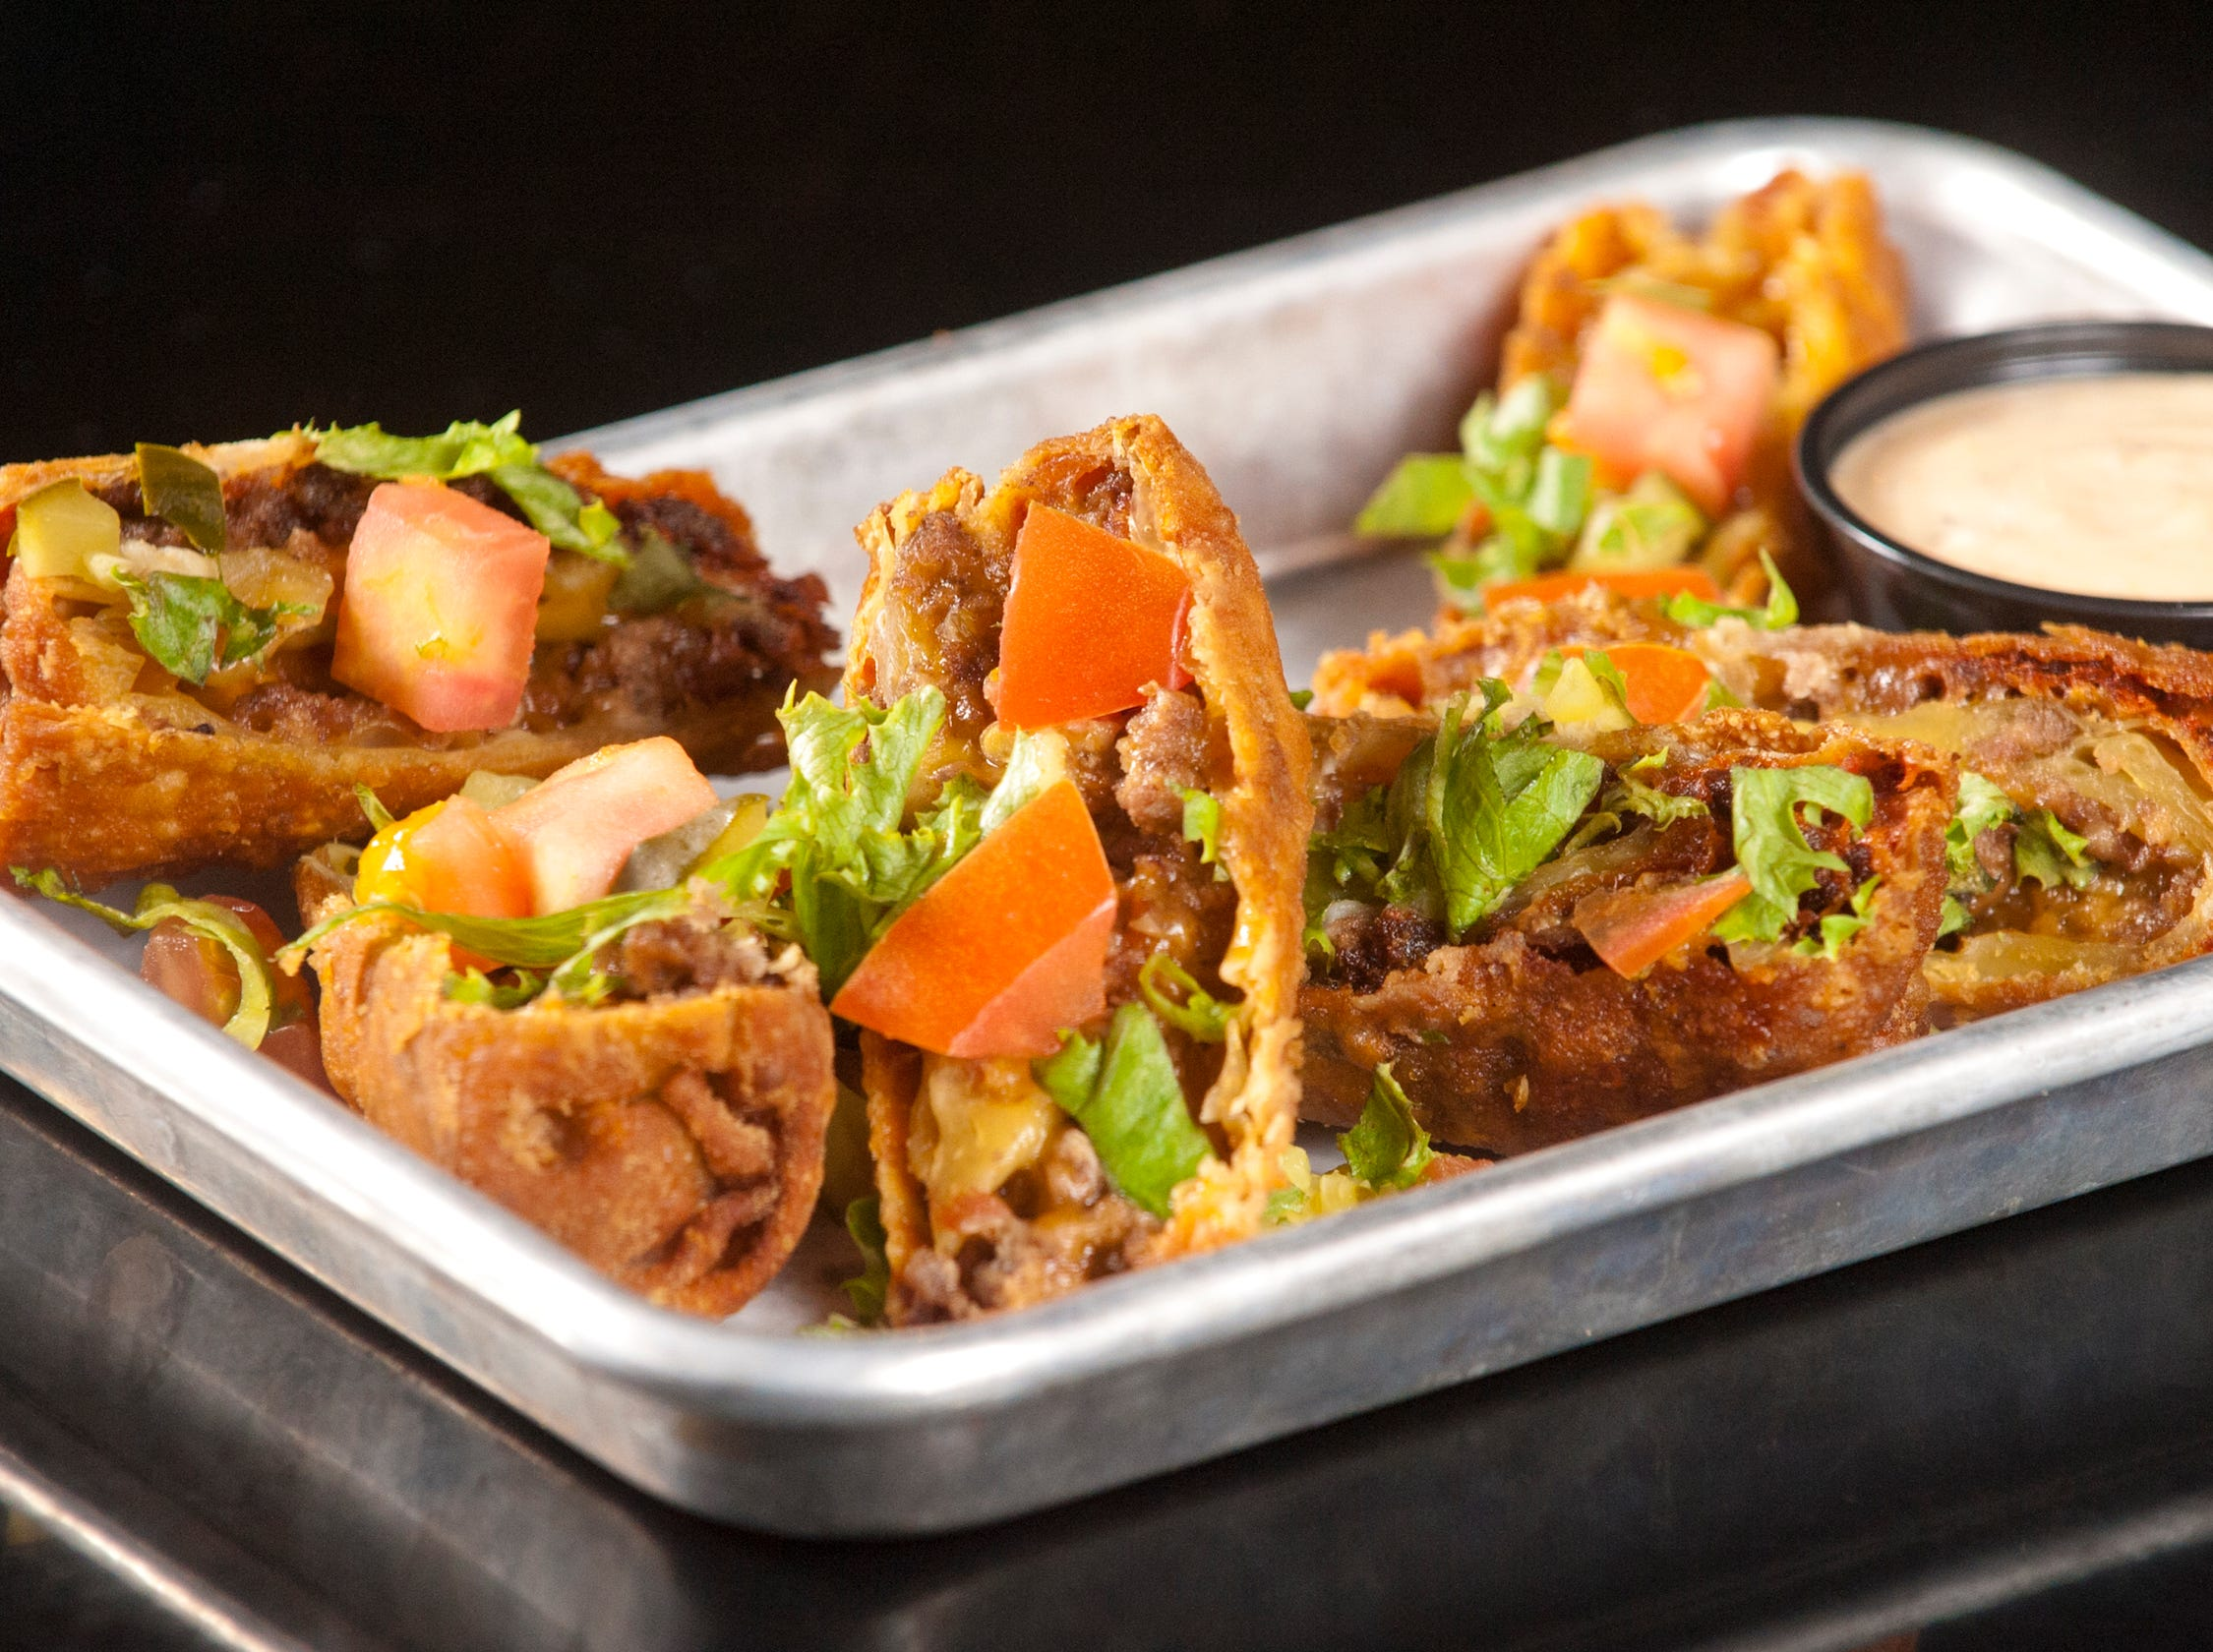 The Recbar's Burgertime Rolls start with wonton wrappers to which a combination of ground beef, bacon bits and cheddar cheese is added. The wontons are then rolled and deep fried, then topped with shredded lettuce, tomato and pickles.14 March 2019